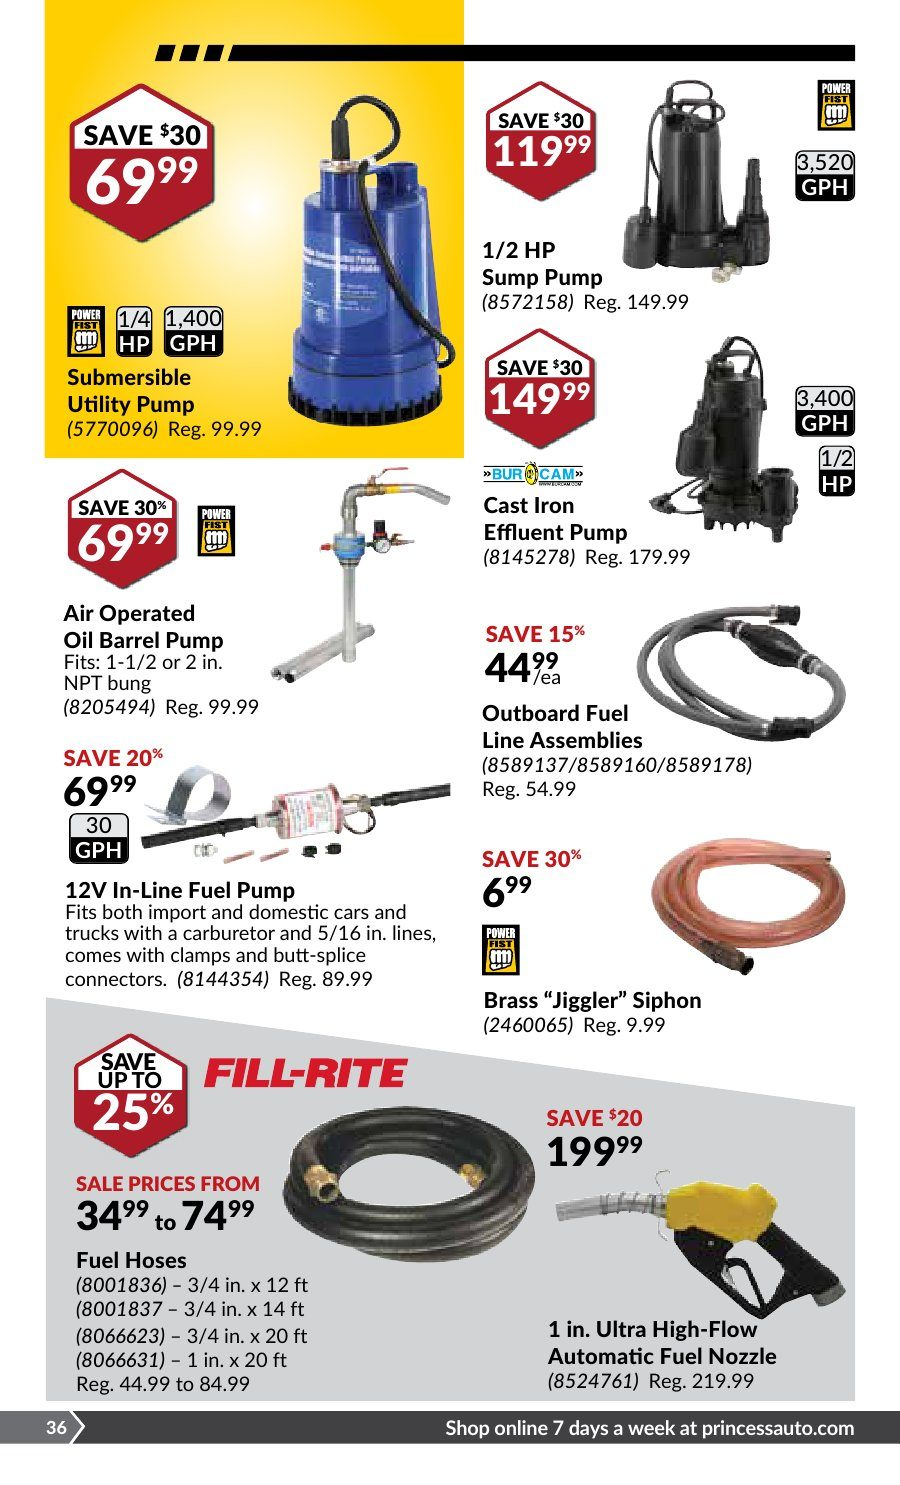 Princess Auto Weekly Flyer September Start Up Sale Sep 4 16 Utilitech 3 Wire 10gpm 1 2 Hp Submersible Well Pump And Control Box